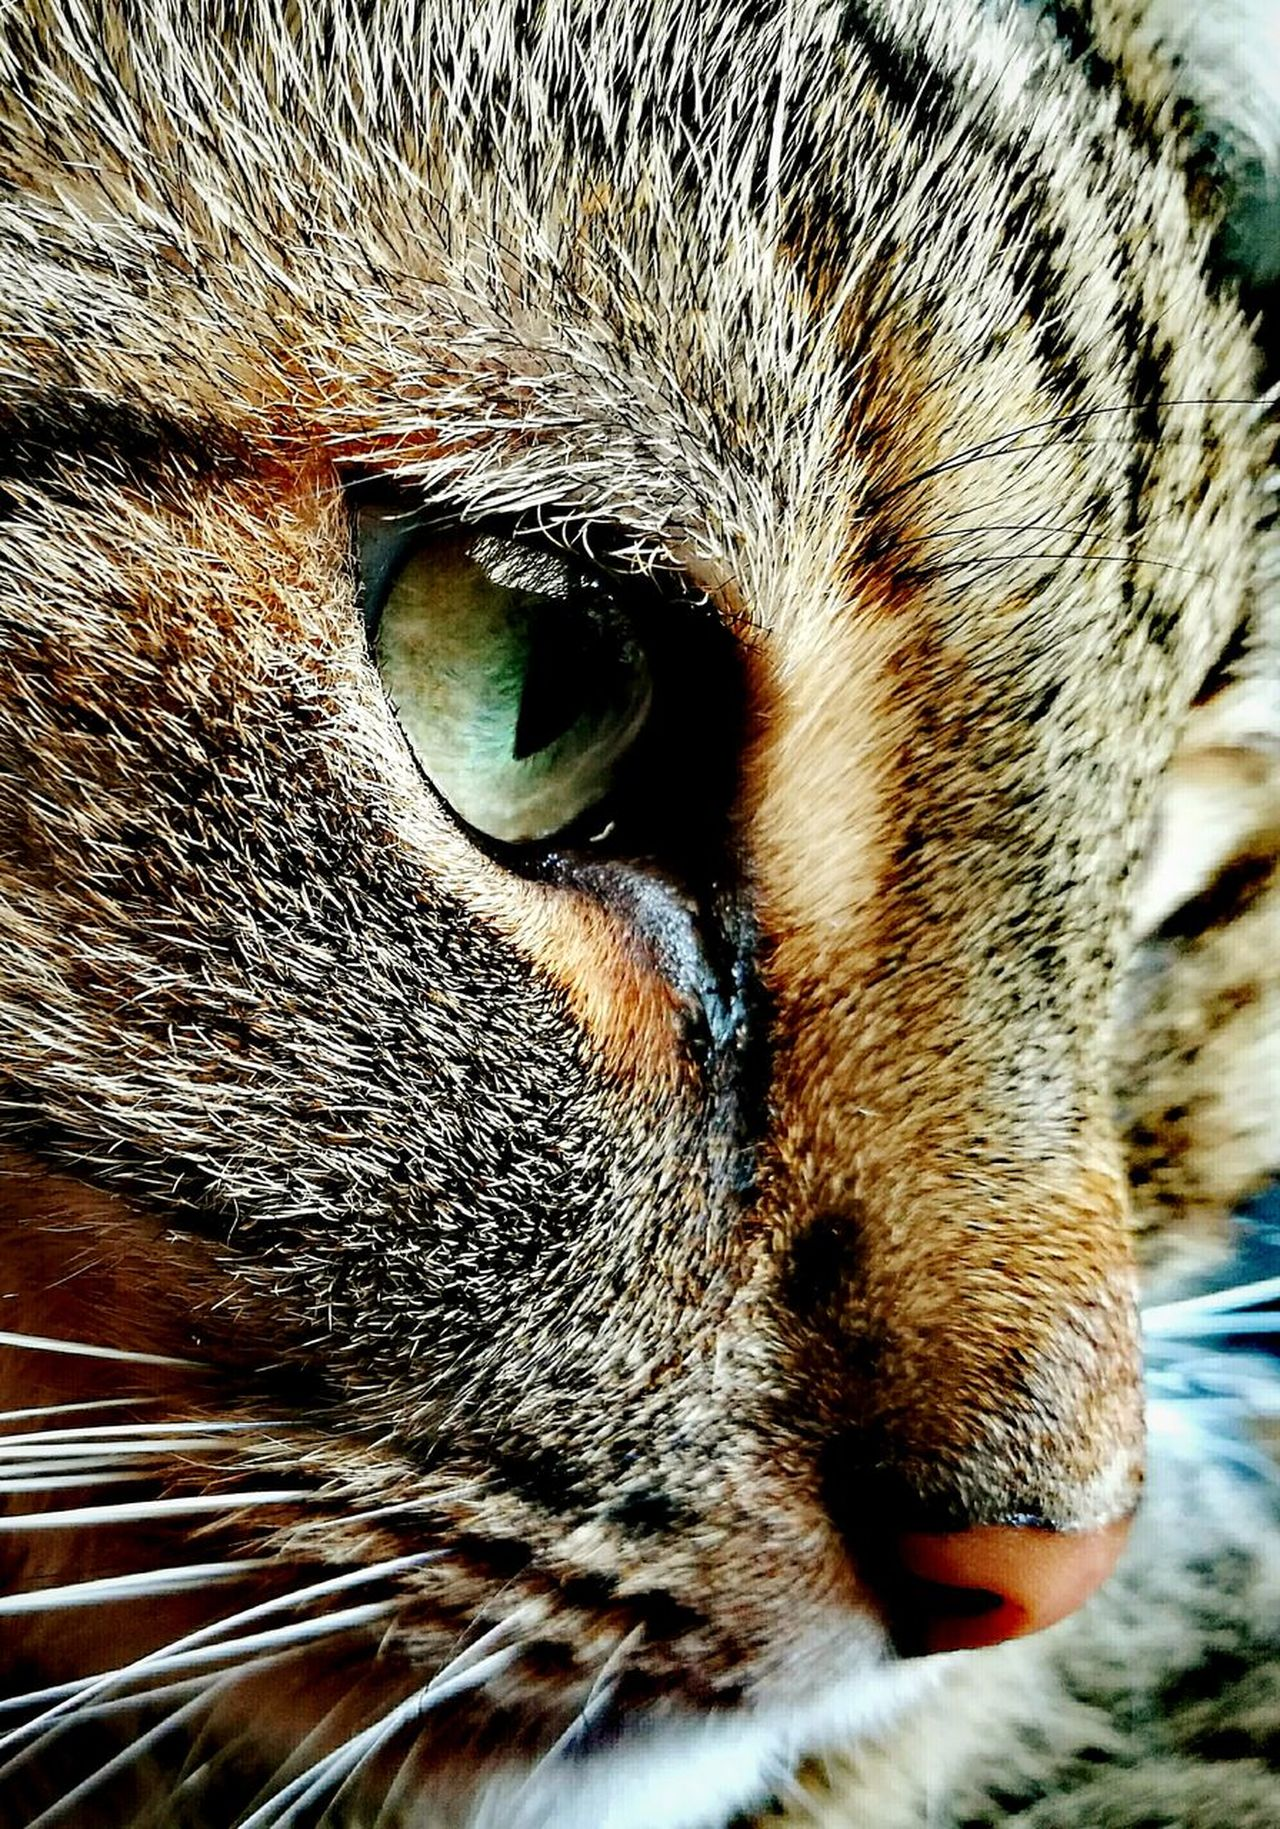 One Animal Animal Themes Close-up Domestic Animals Domestic Cat Mammal Full Frame Animal Body Part Cats 🐱 Cats Cat Cat♡ Cat Eyes Cateyes Huaweiphotography Huawei P9 Leica HuaweiP9 HuaweiP9Photography Focus On Foreground Portrait Cat Portrait Cat Portait Cat Photography